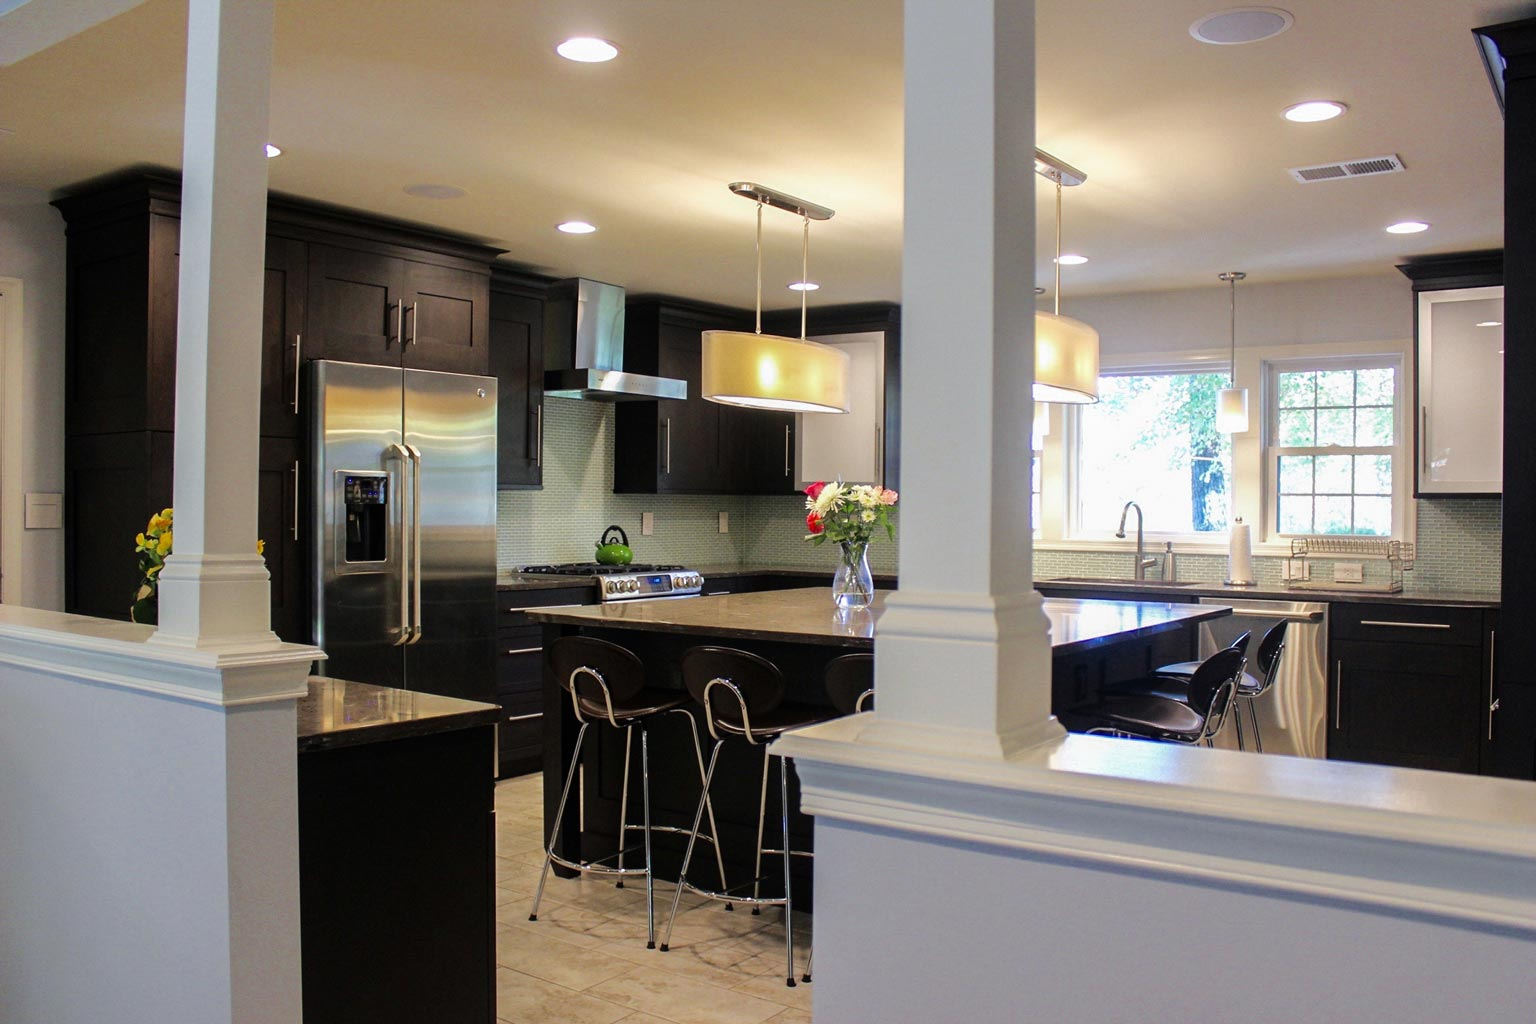 whole house renovations kitchen remodeling manassas va whole home remodeling vienna va